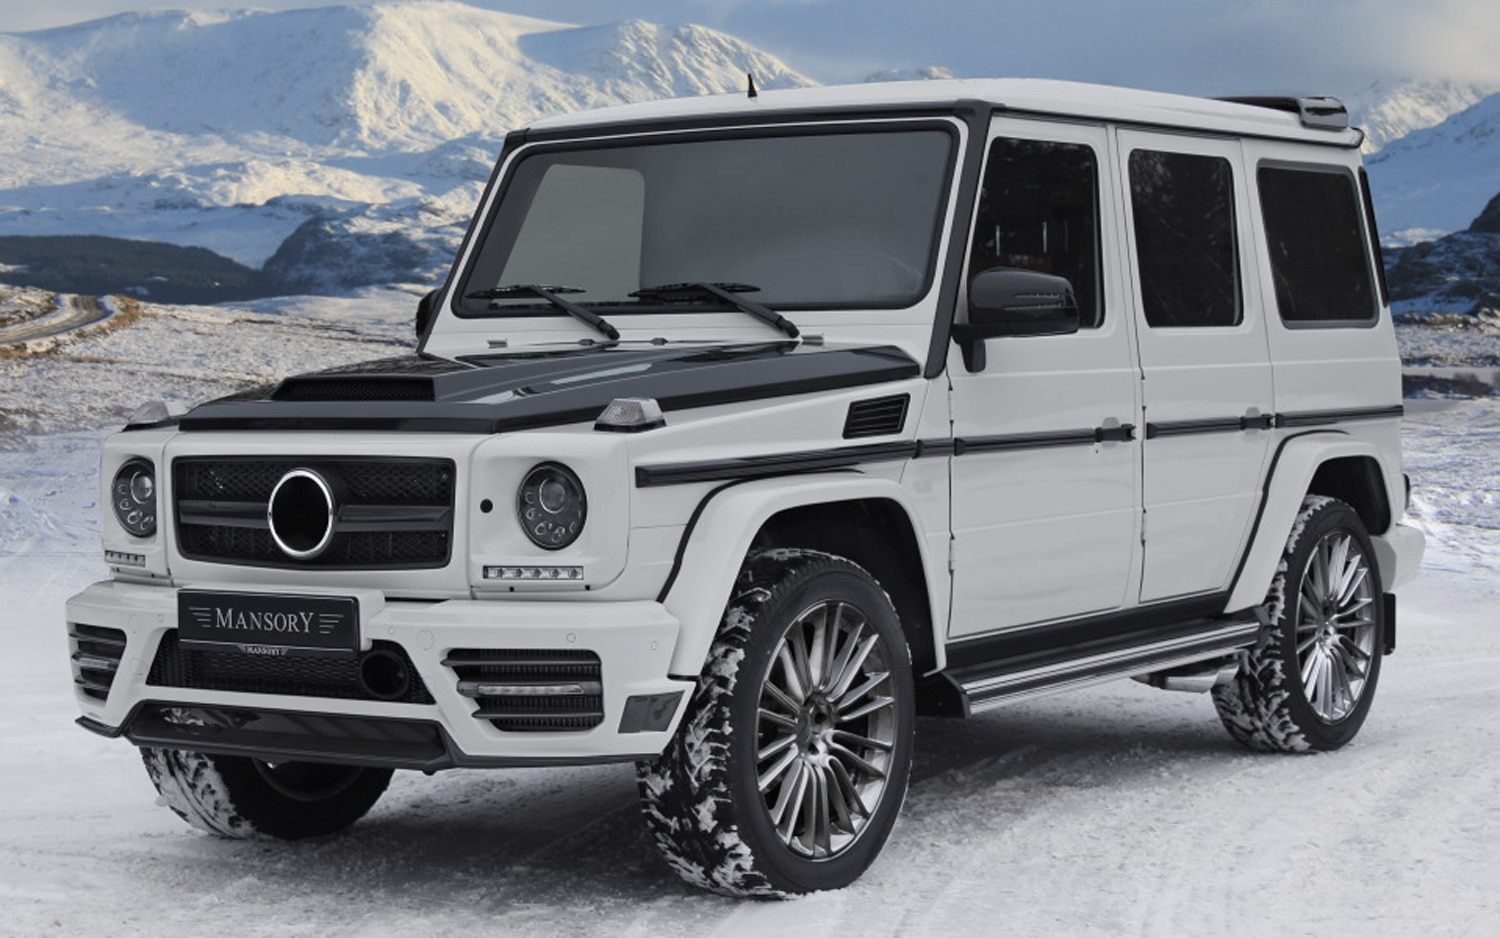 Mansory Mercedes Benz G Class Front Three Quarters View1